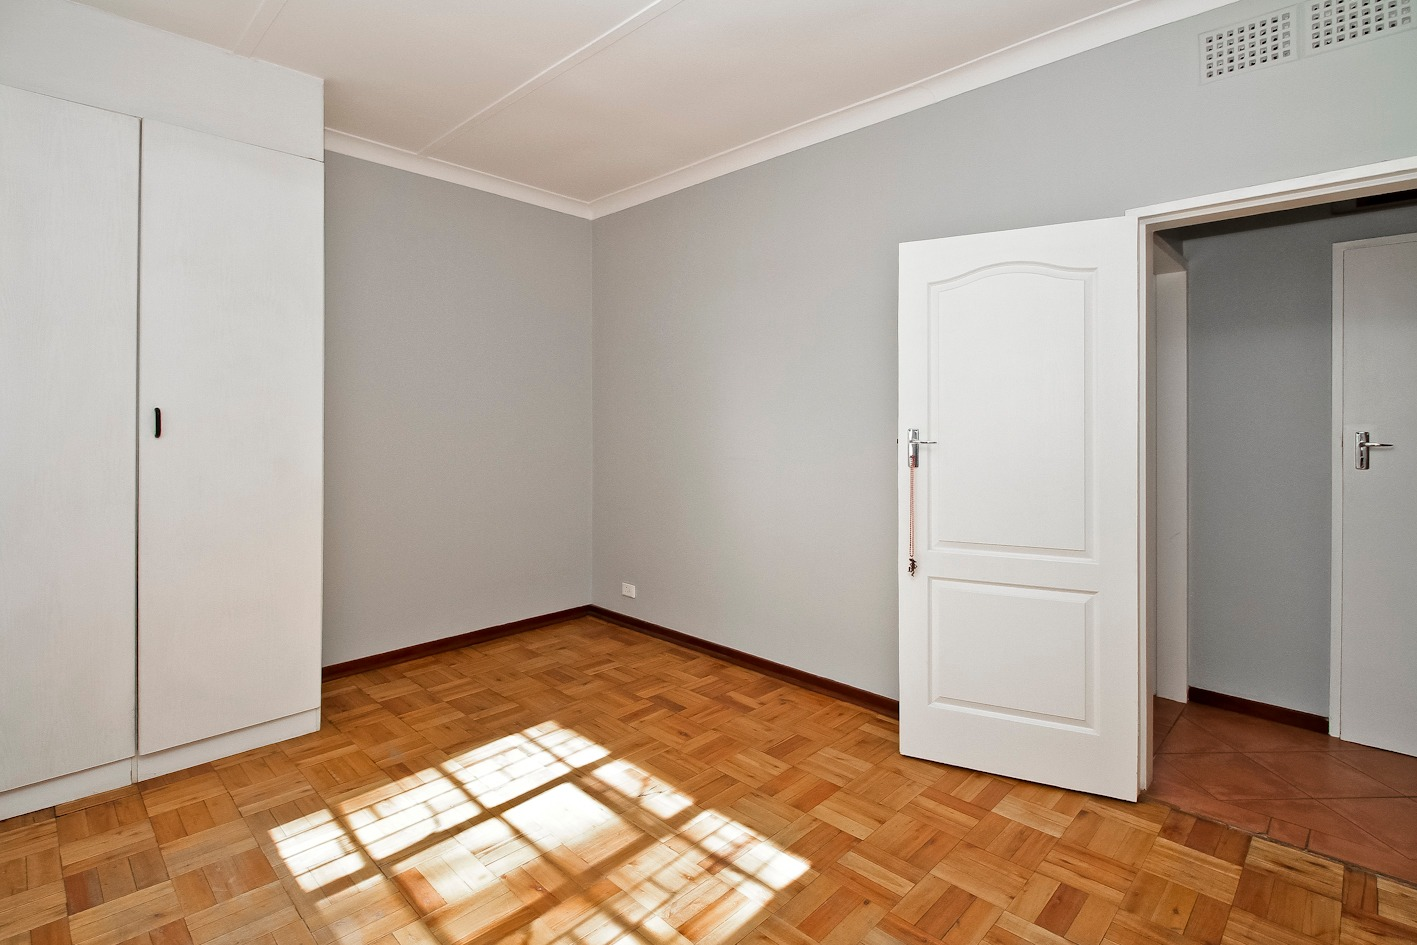 2 Bedroom Townhouse For Sale in Lakeside